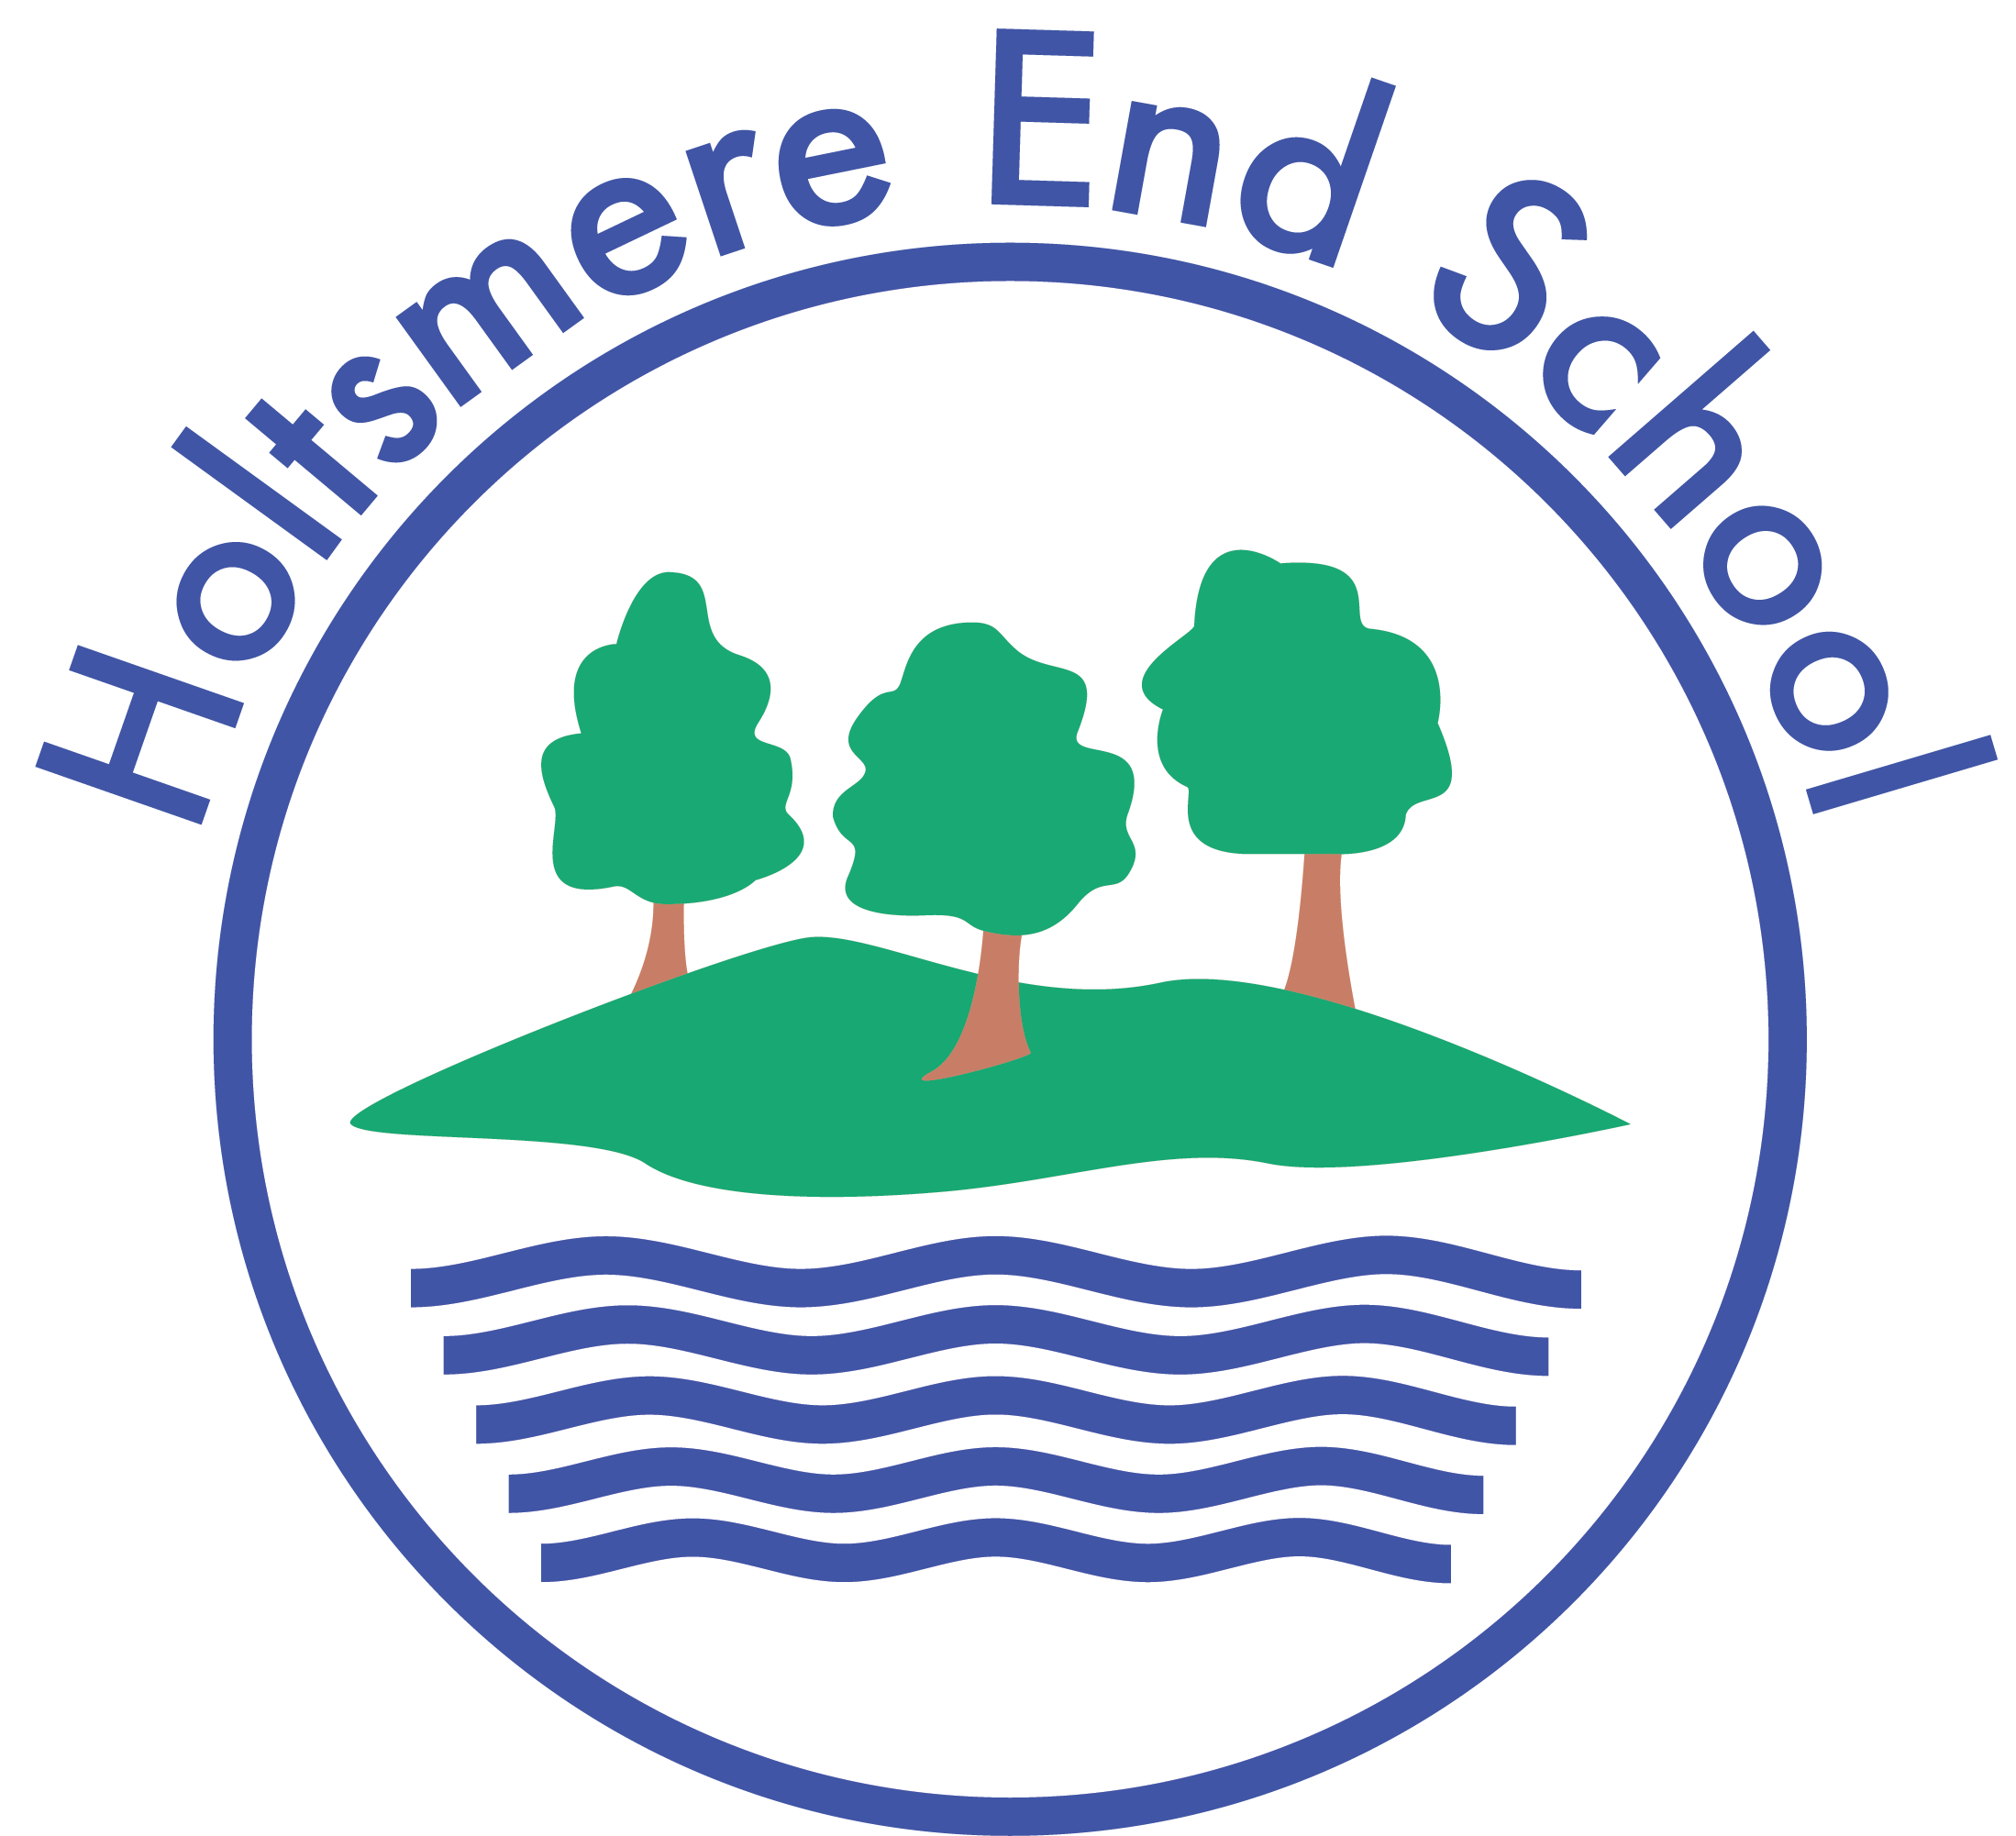 Holtsmere End Junior School